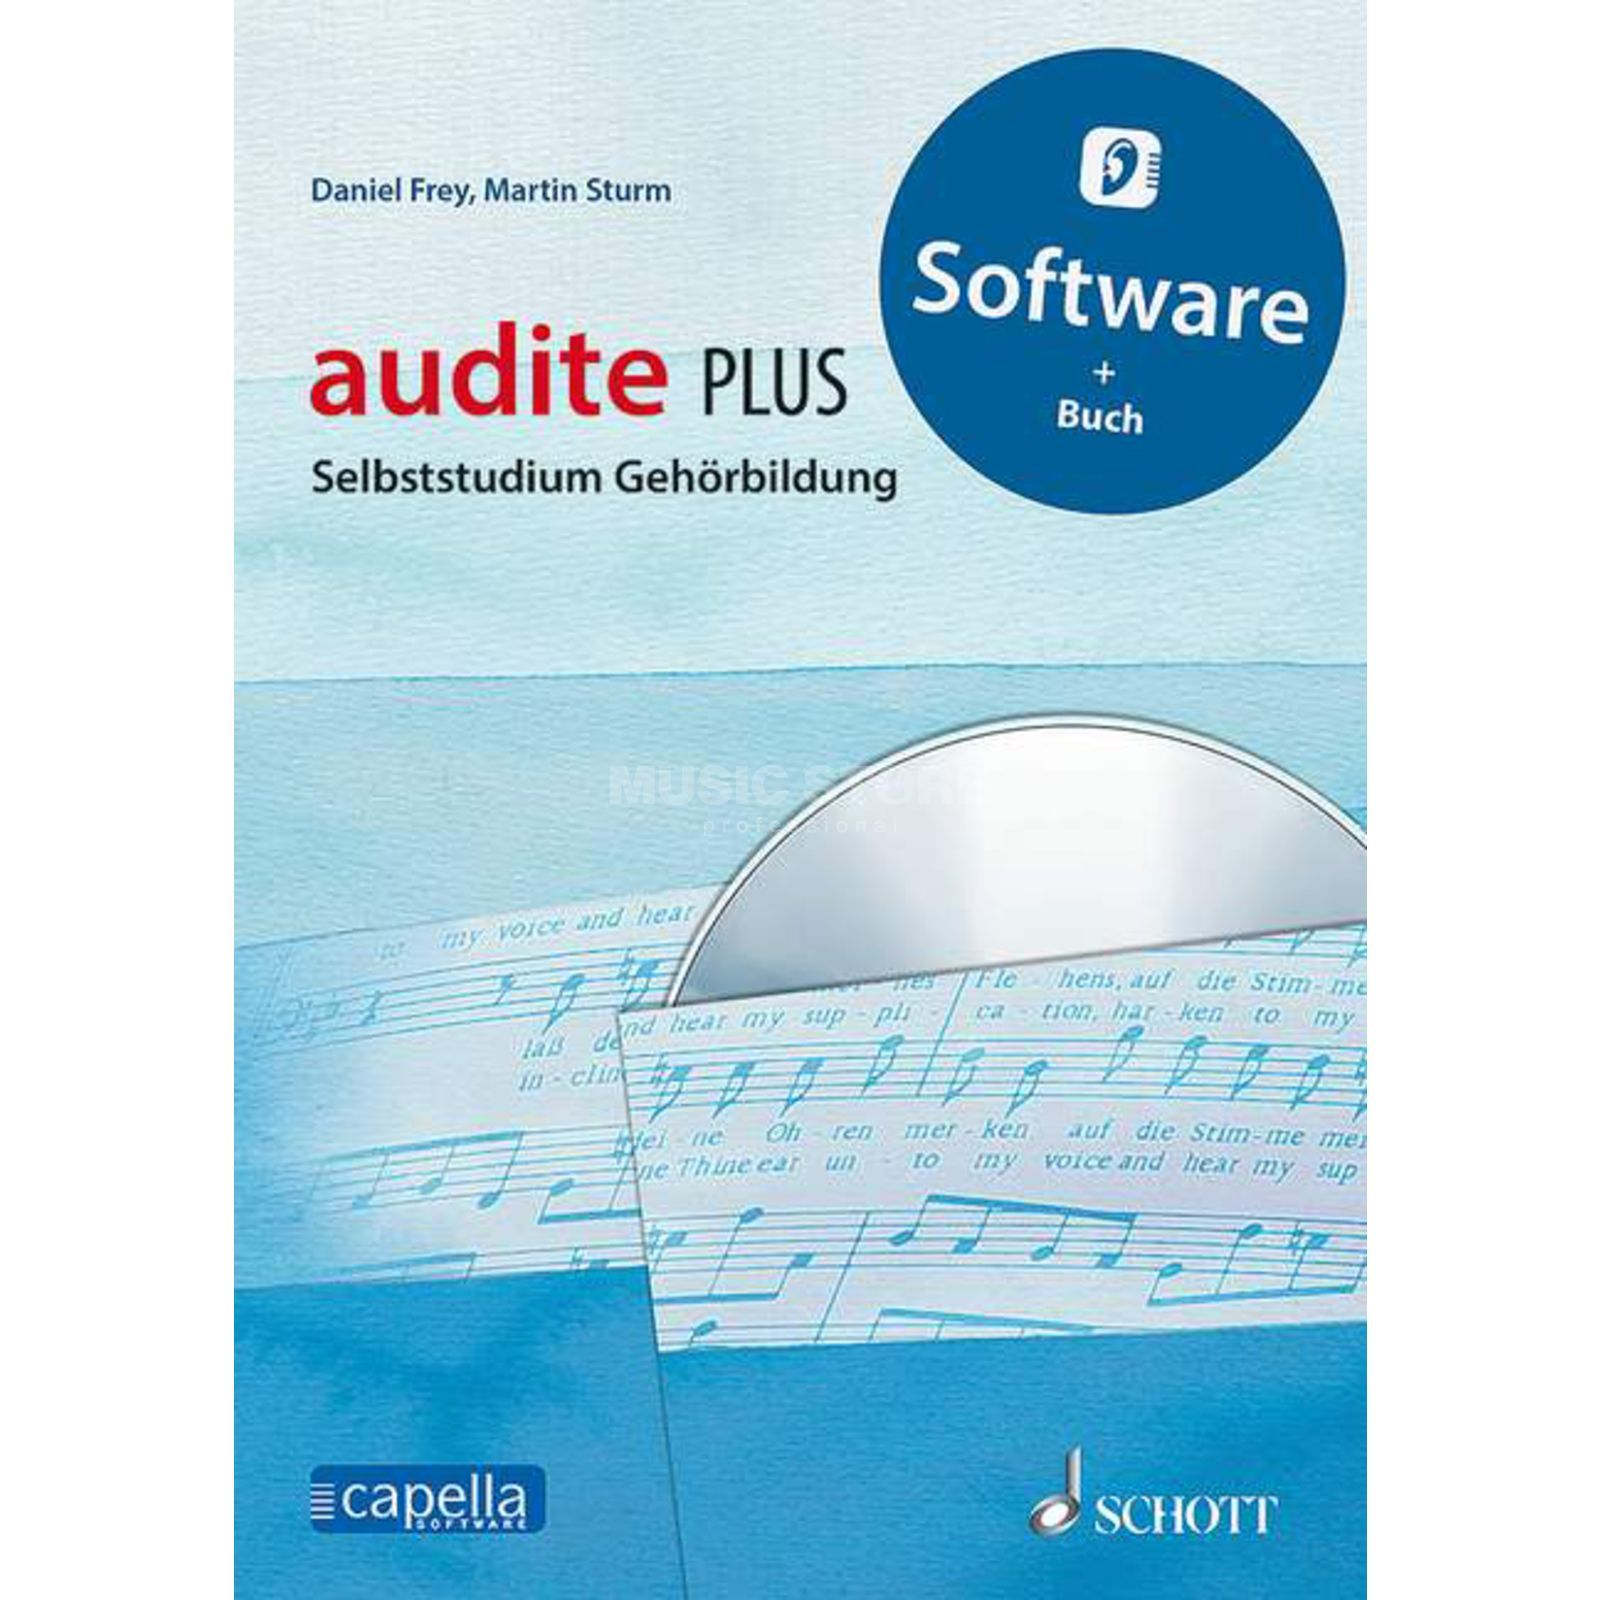 Schott Music audite PLUS Produktbillede